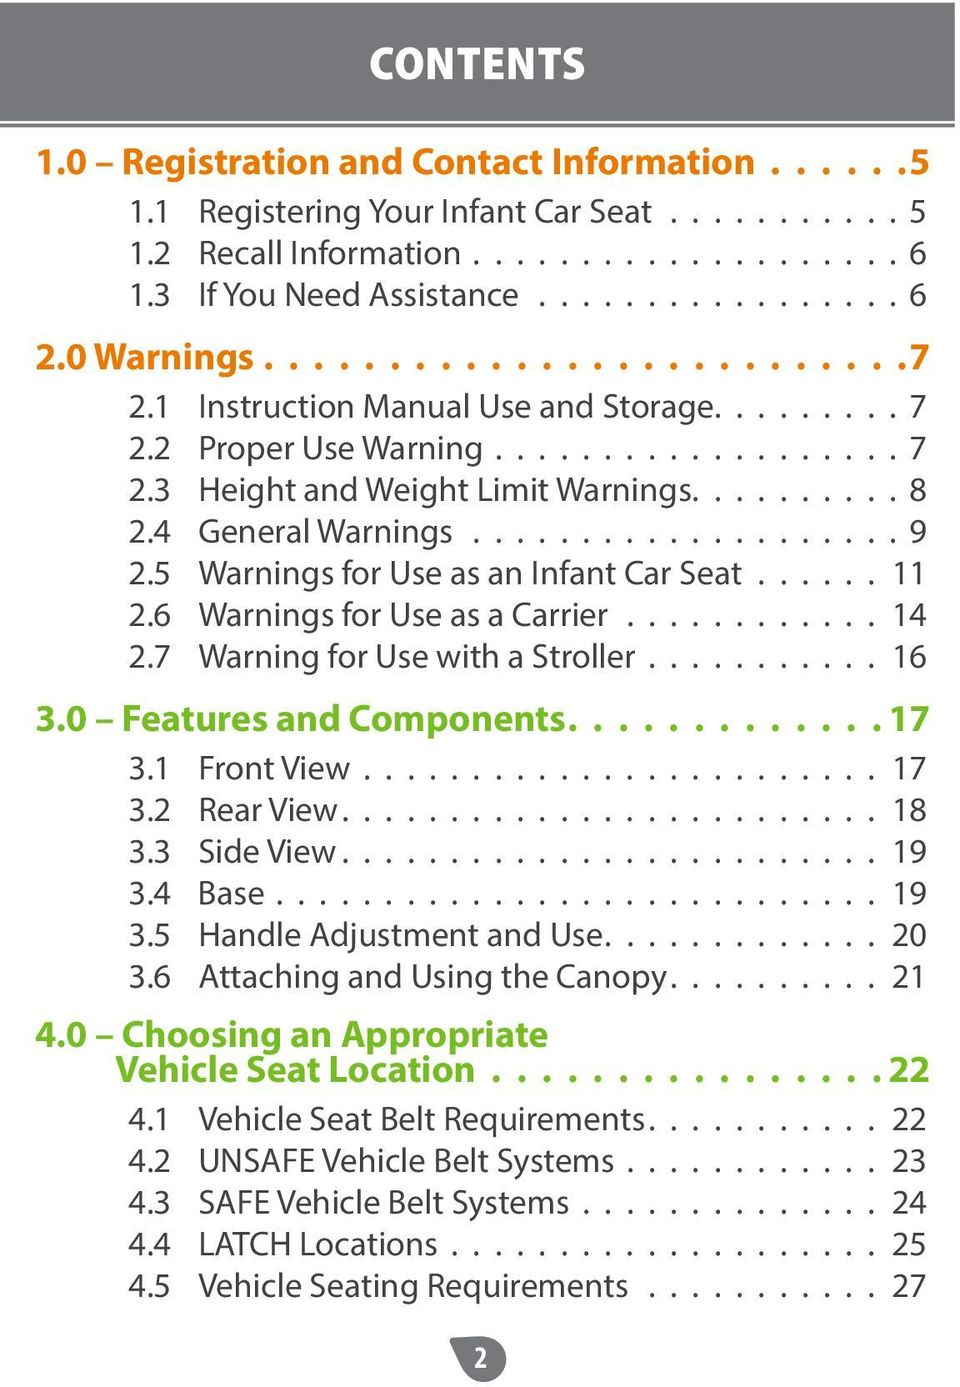 4 General Warnings..................... 9 2.5 Warnings for Use as an Infant Car Seat....... 11 2.6 Warnings for Use as a Carrier............. 14 2.7 Warning for Use with a Stroller........... 16 3.